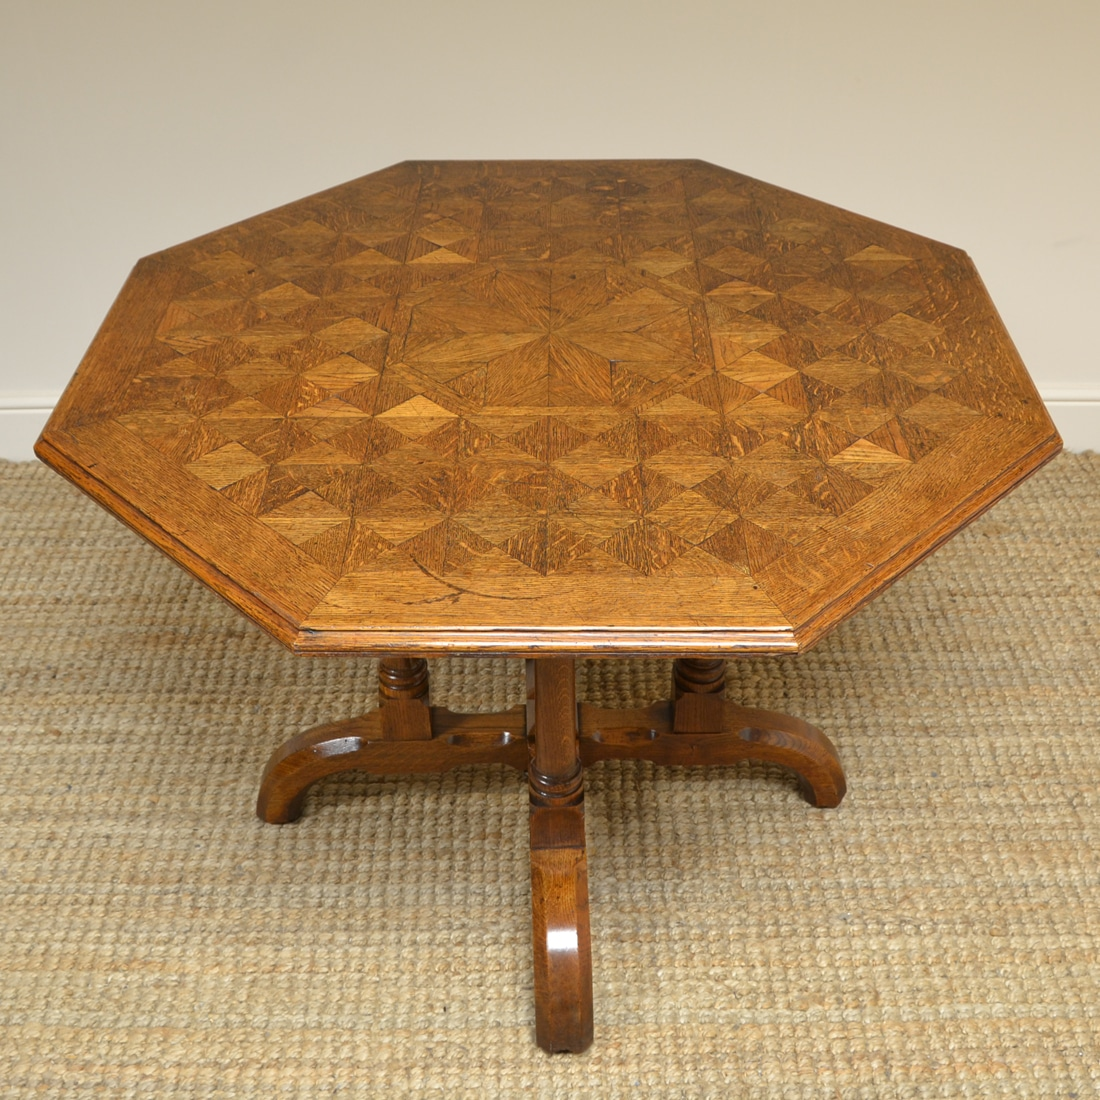 Victorian Arts & Crafts Parquetry Oak Antique Centre Table by James Shoolbred